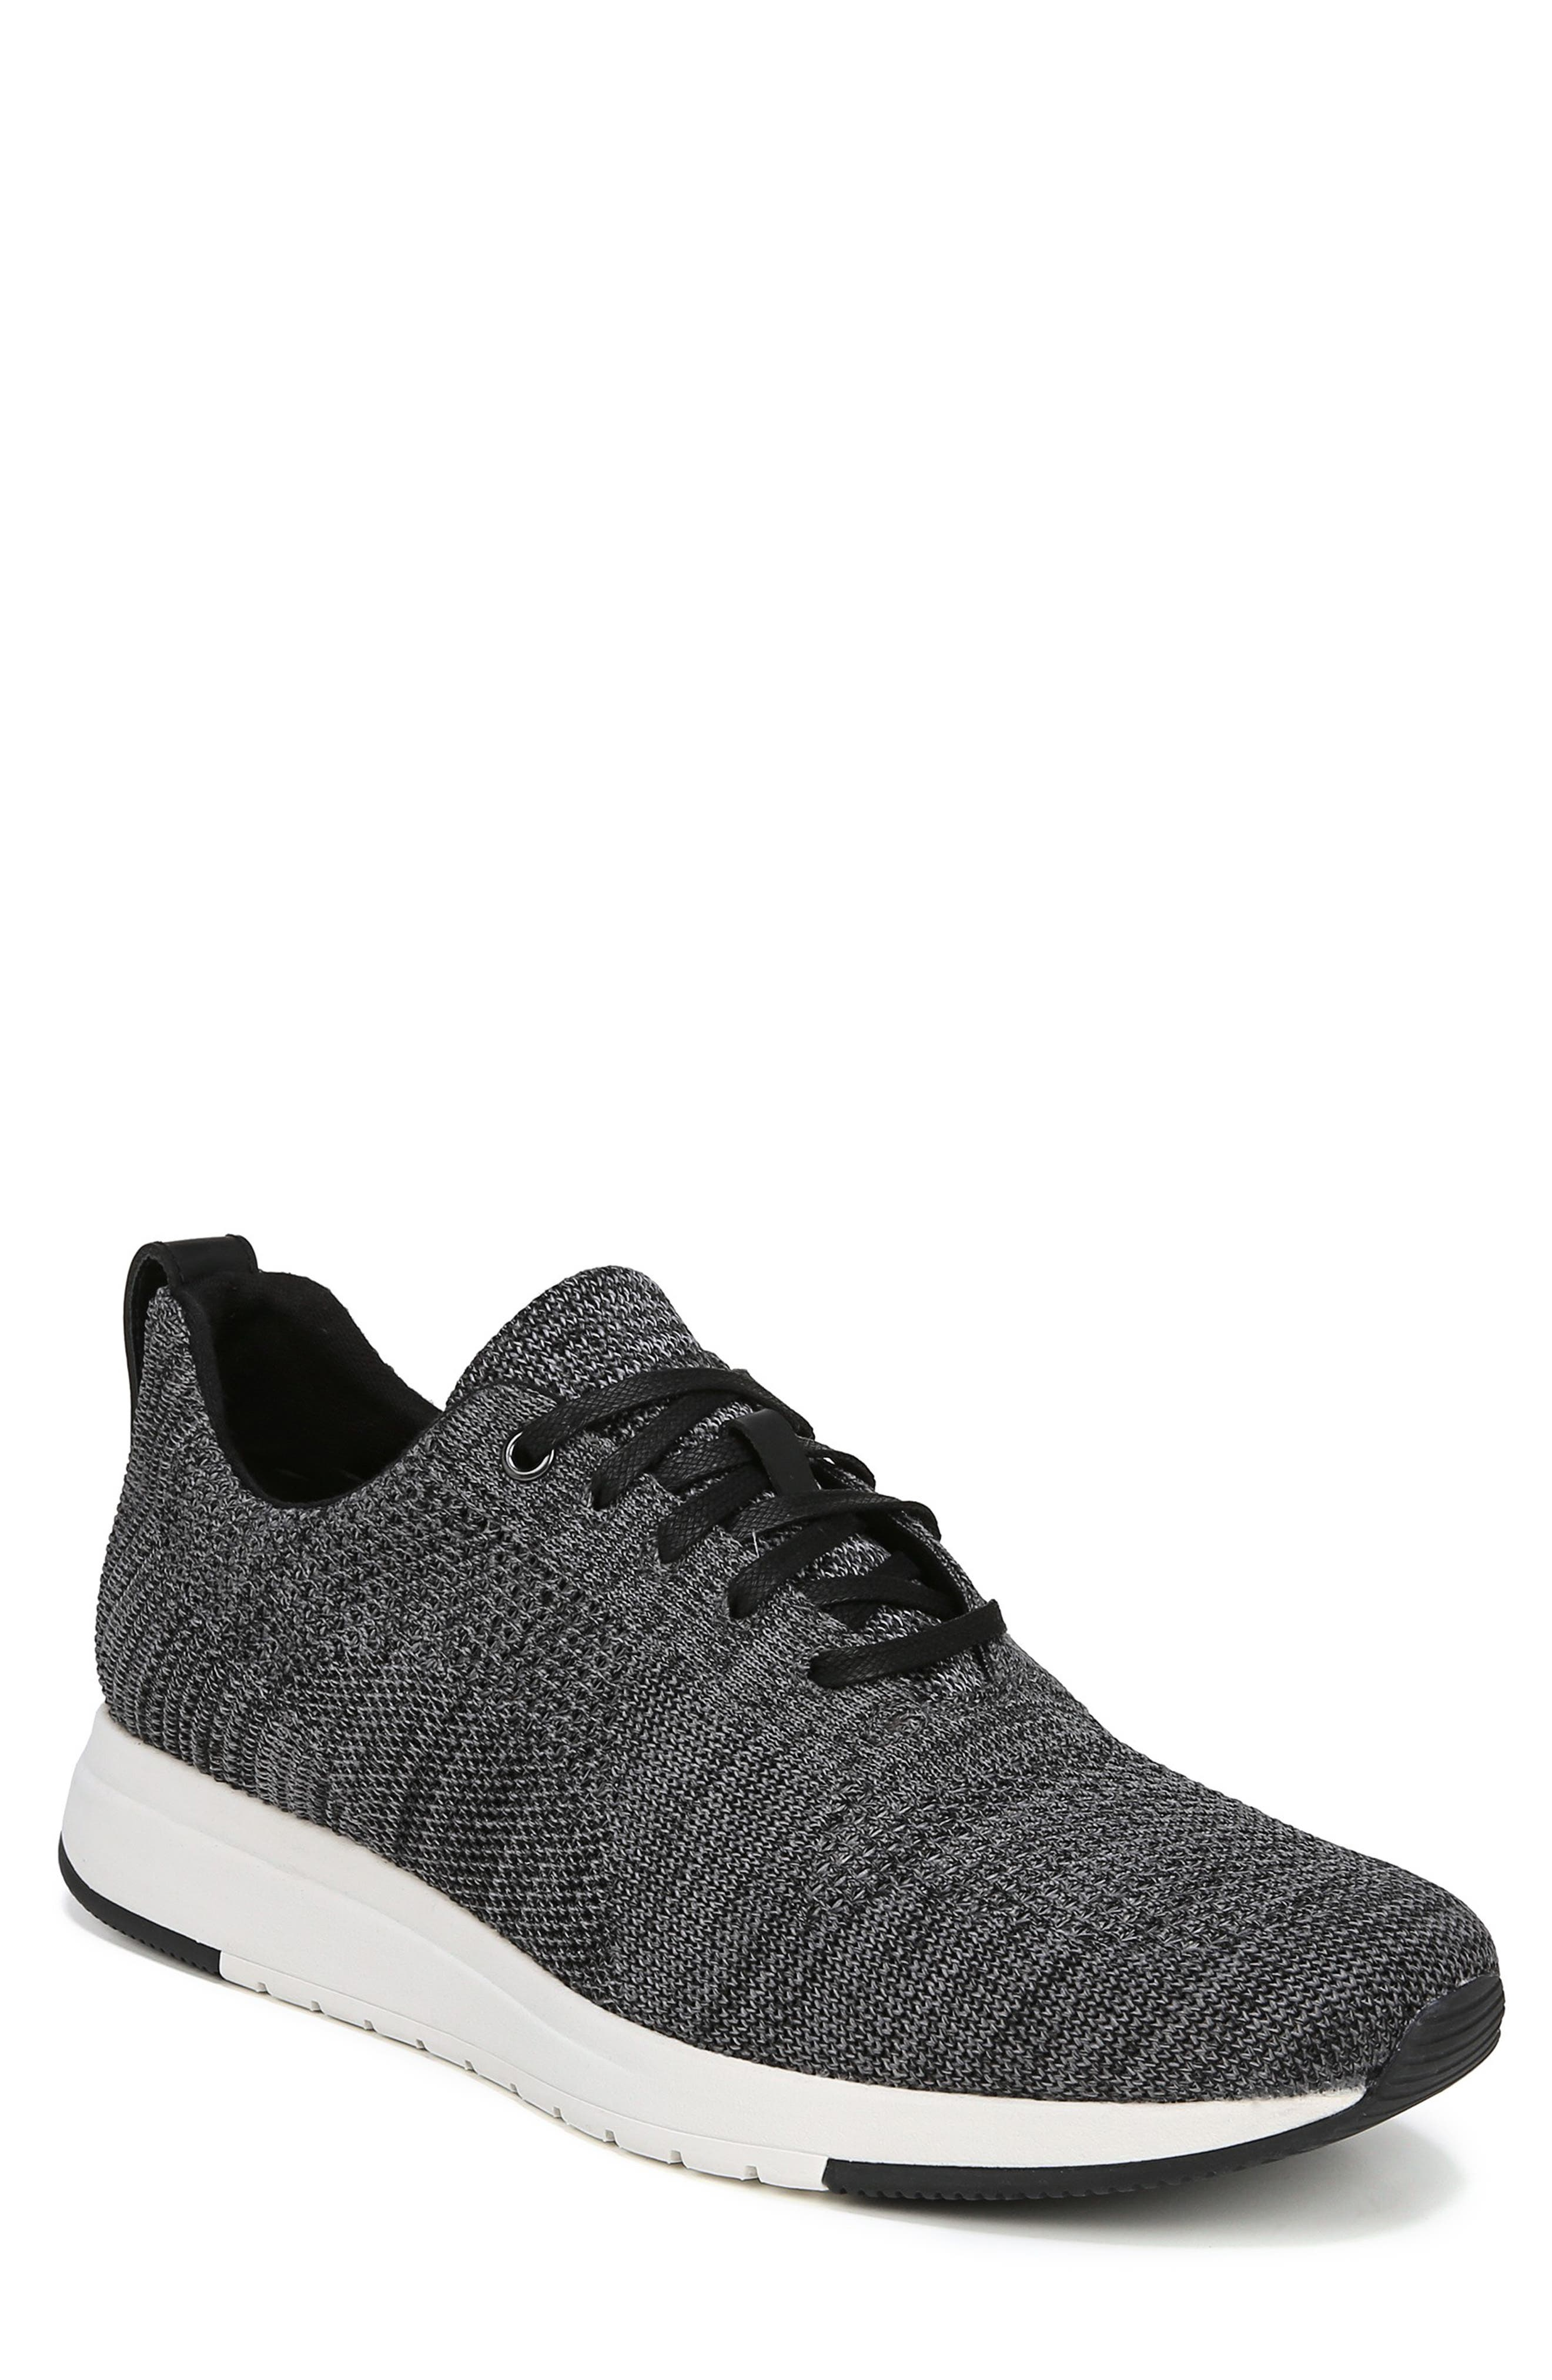 VINCE, Palo Knit Sneaker, Main thumbnail 1, color, MARL GREY/ BLACK